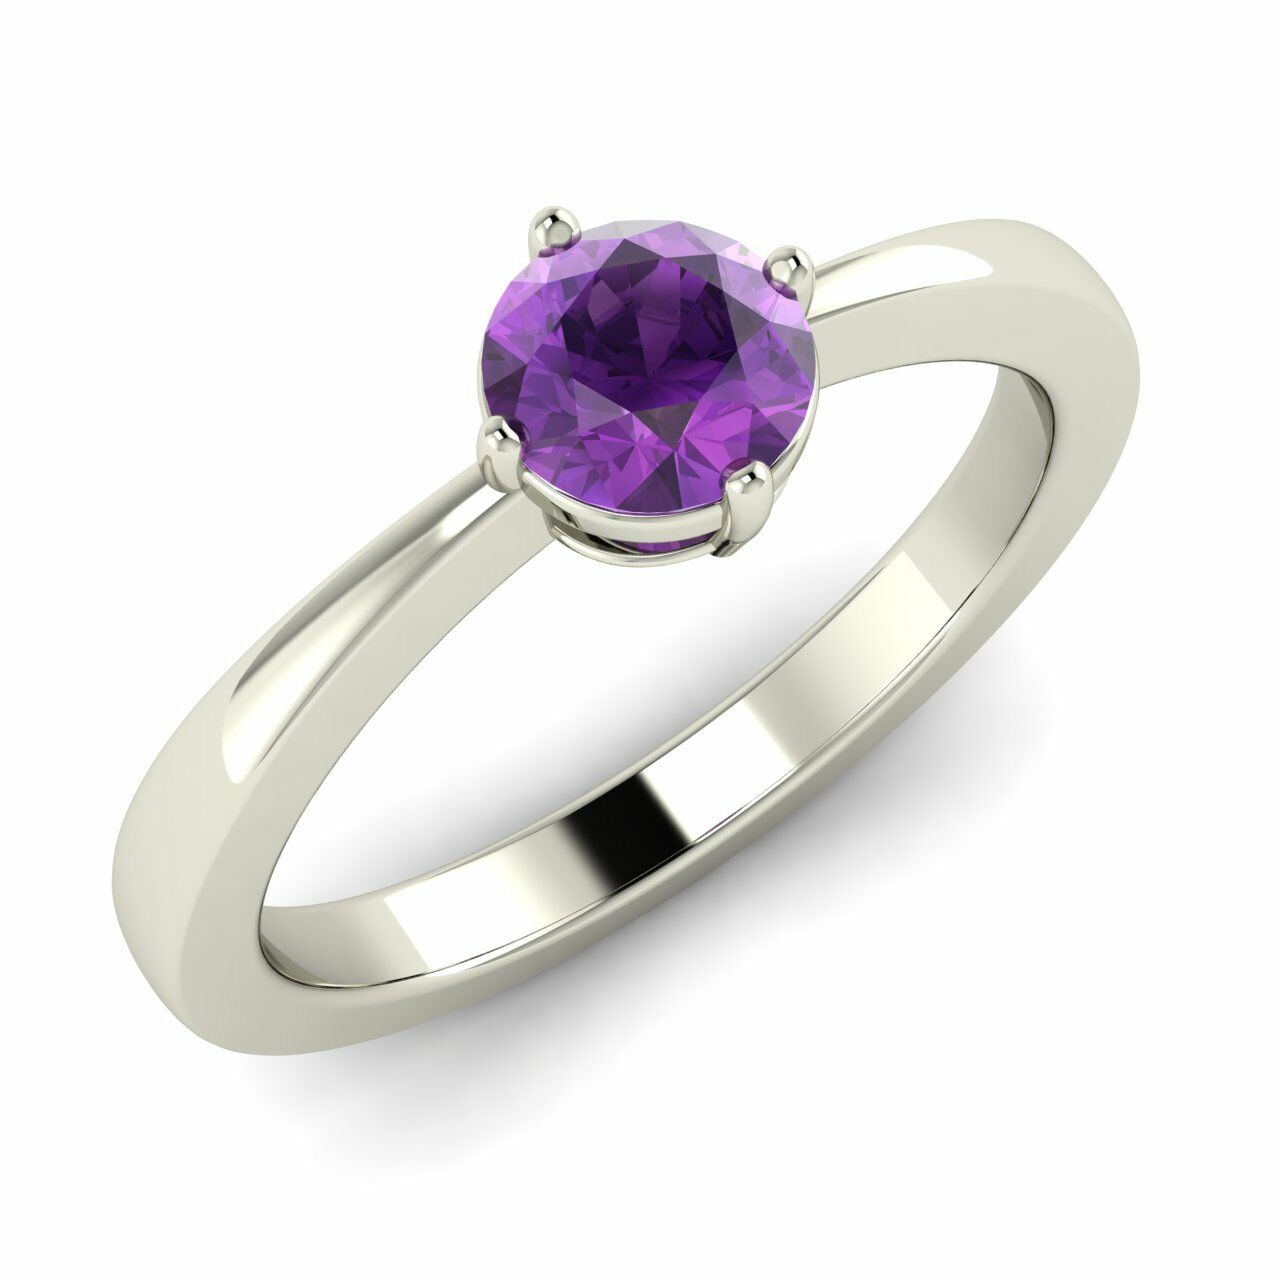 Certified 0.35 Cts Natural Amethyst Solitaire Engagement Ring In 14K White gold